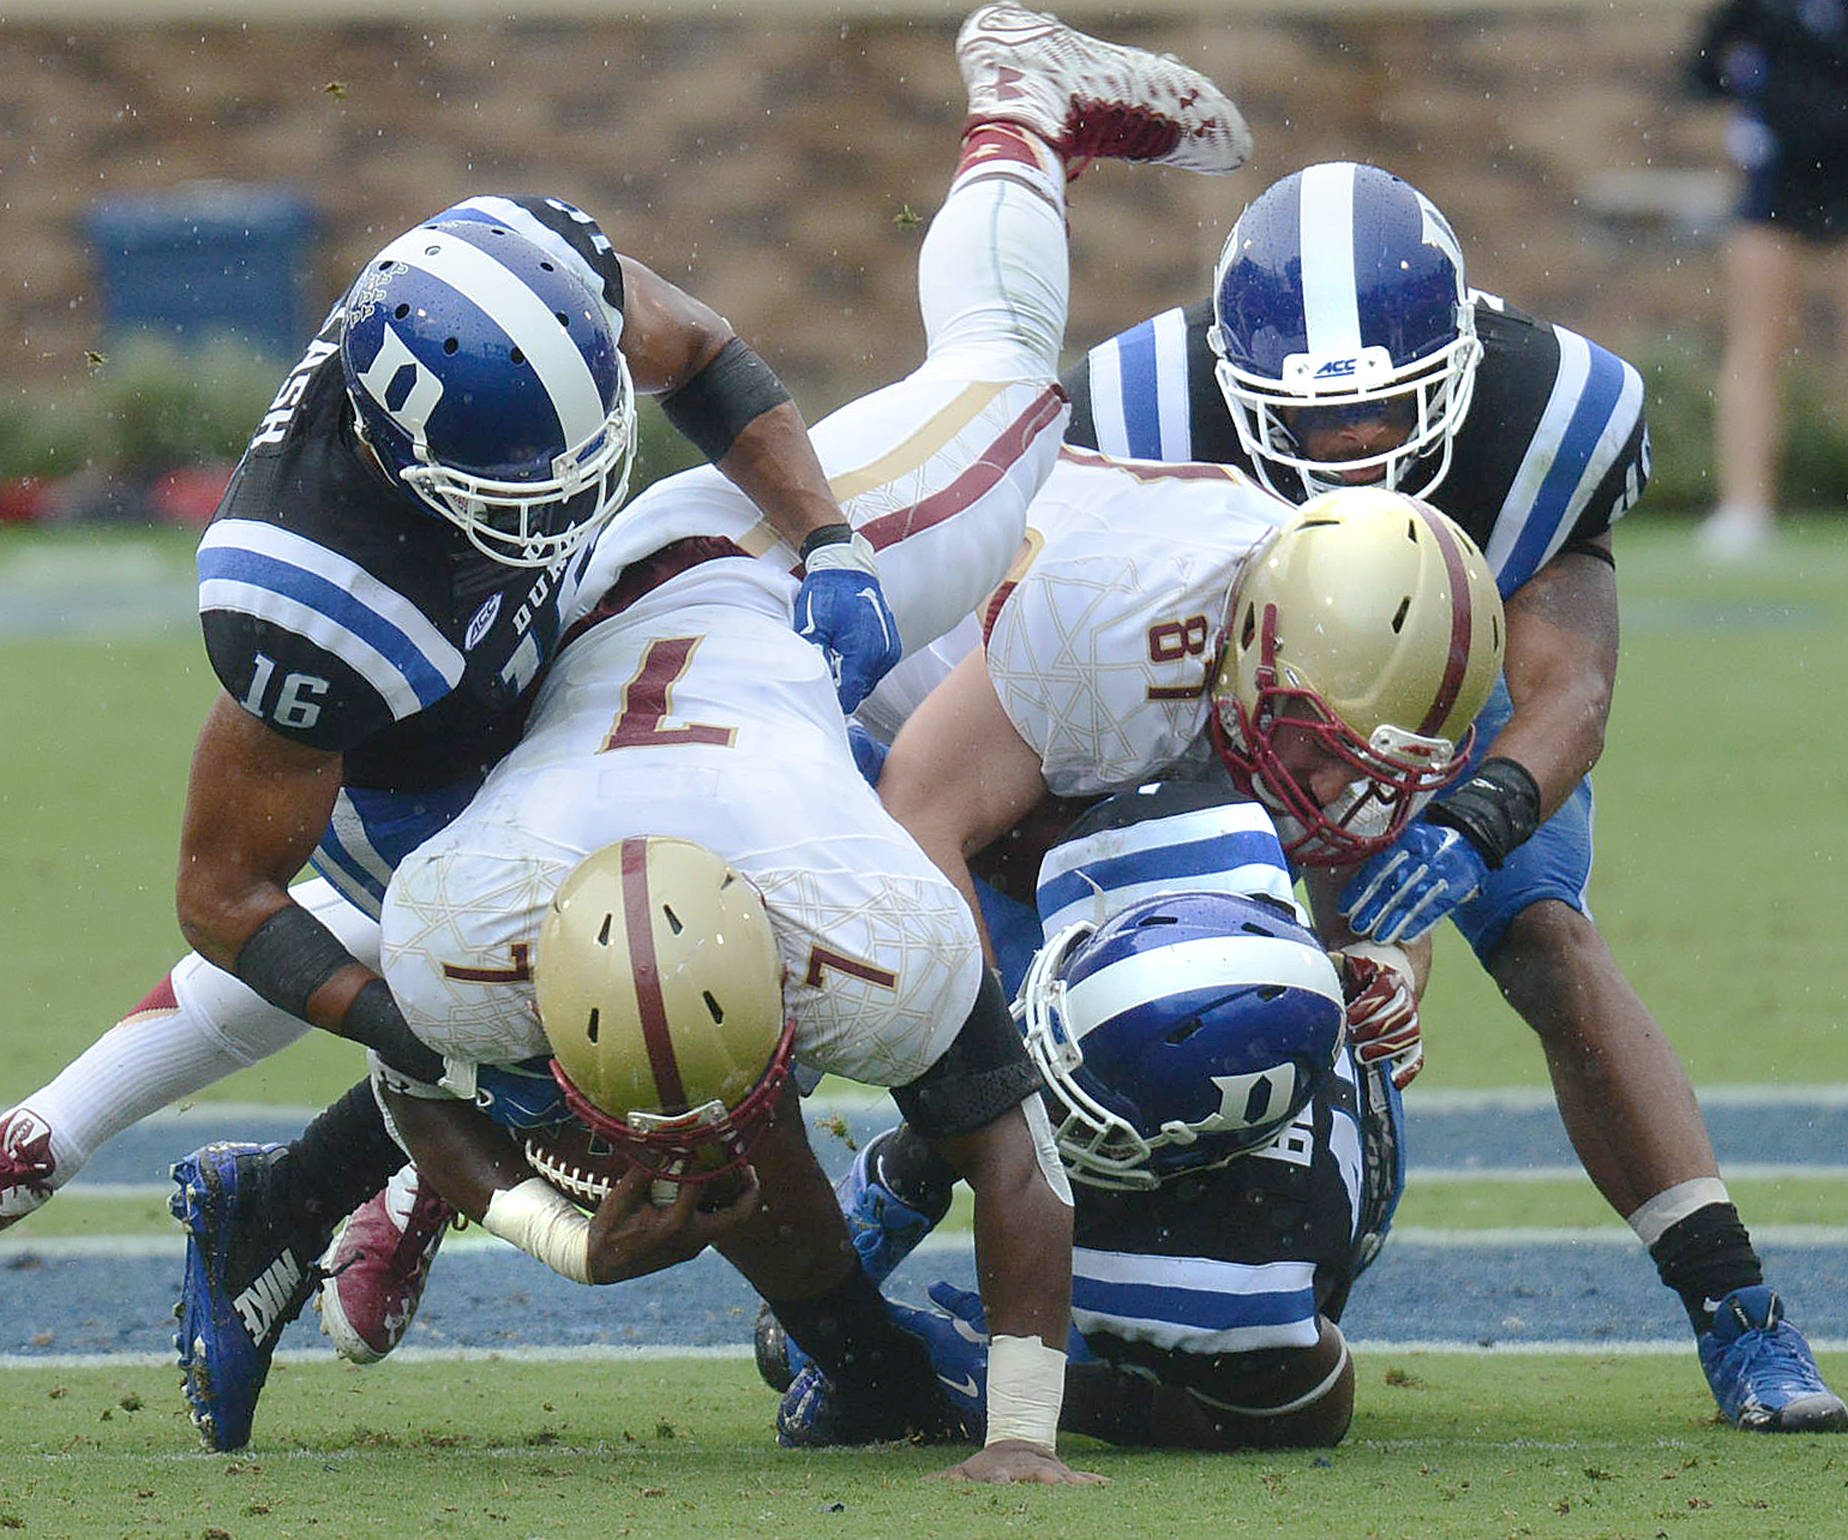 Duke's Jeremy Cash (16) takes down Boston College's Marcus Outlow (7) during an NCAA college football game in Durham, N.C., Saturday, Oct. 3, 2015. (Bernard Thomas/The Herald-Sun via AP)